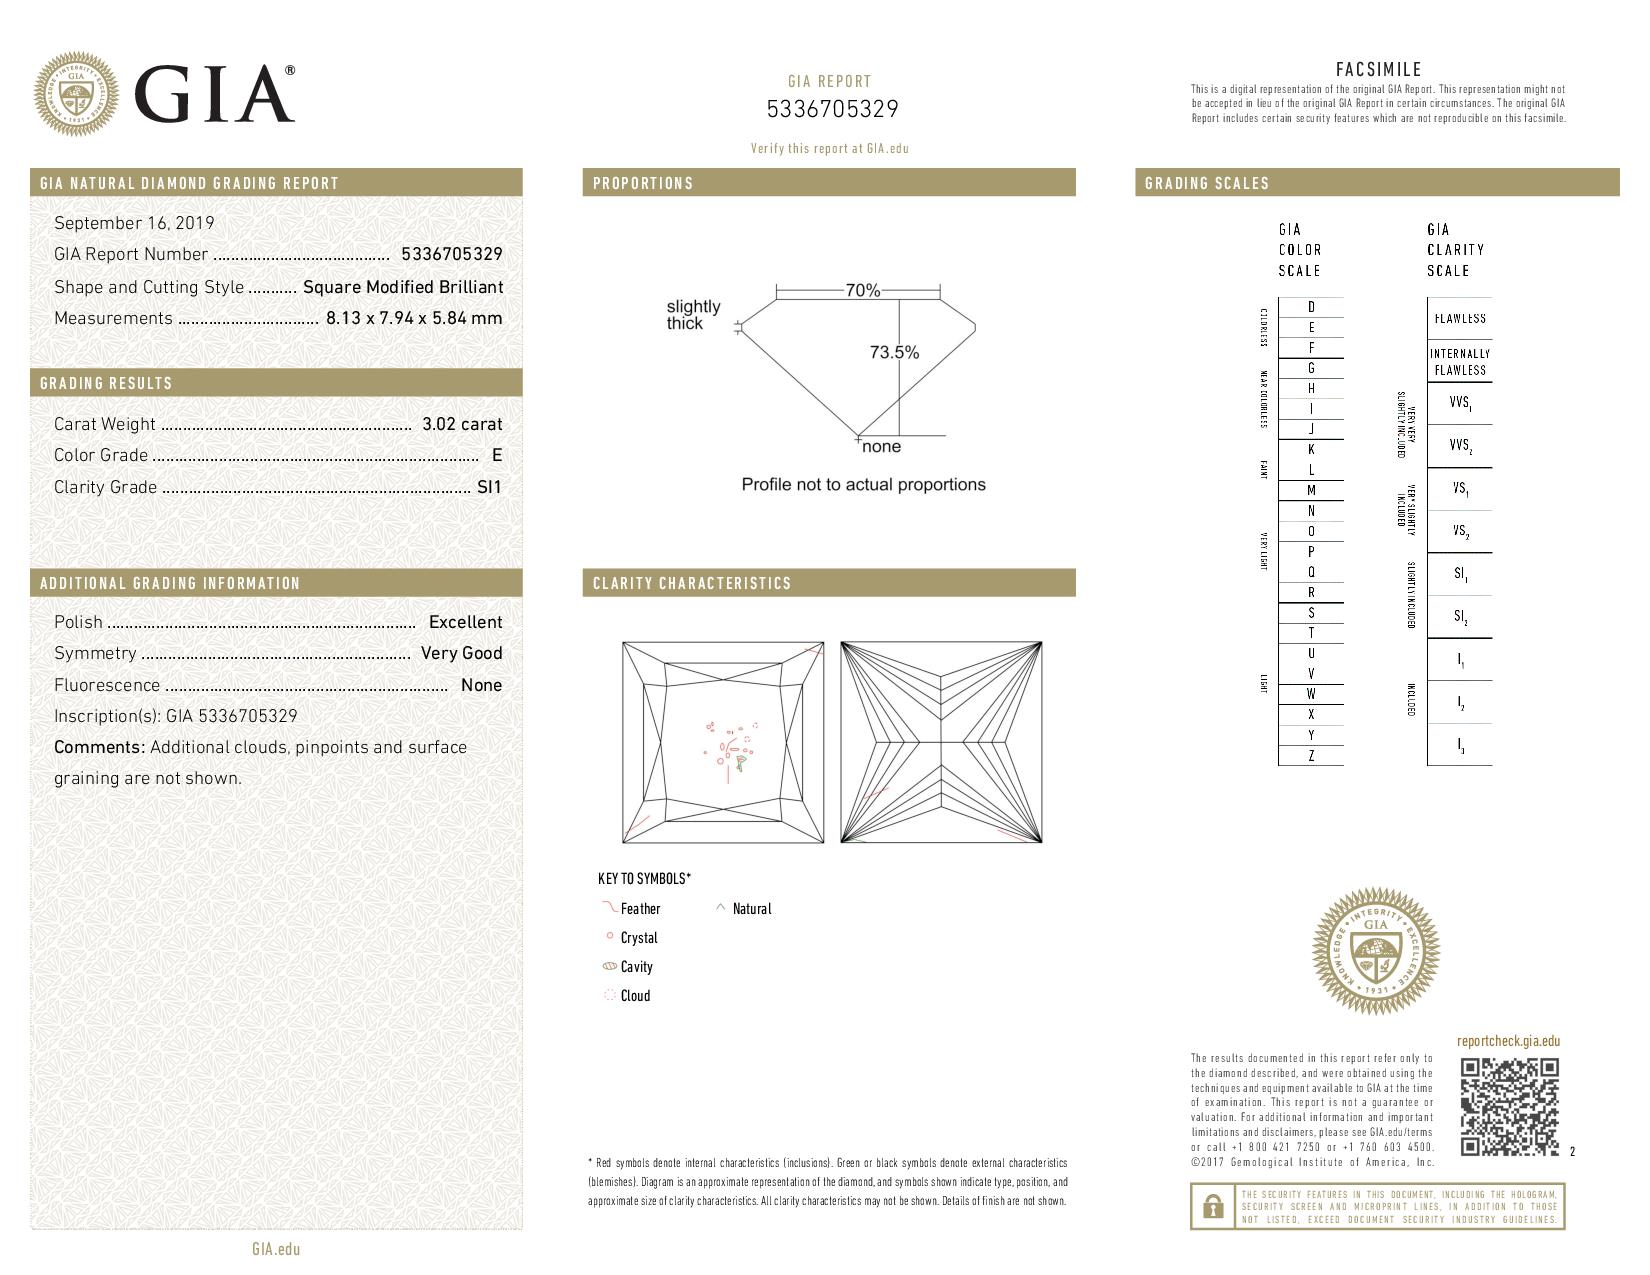 This is a 3.02 carat princess shape, E color, SI1 clarity natural diamond accompanied by a GIA grading report.